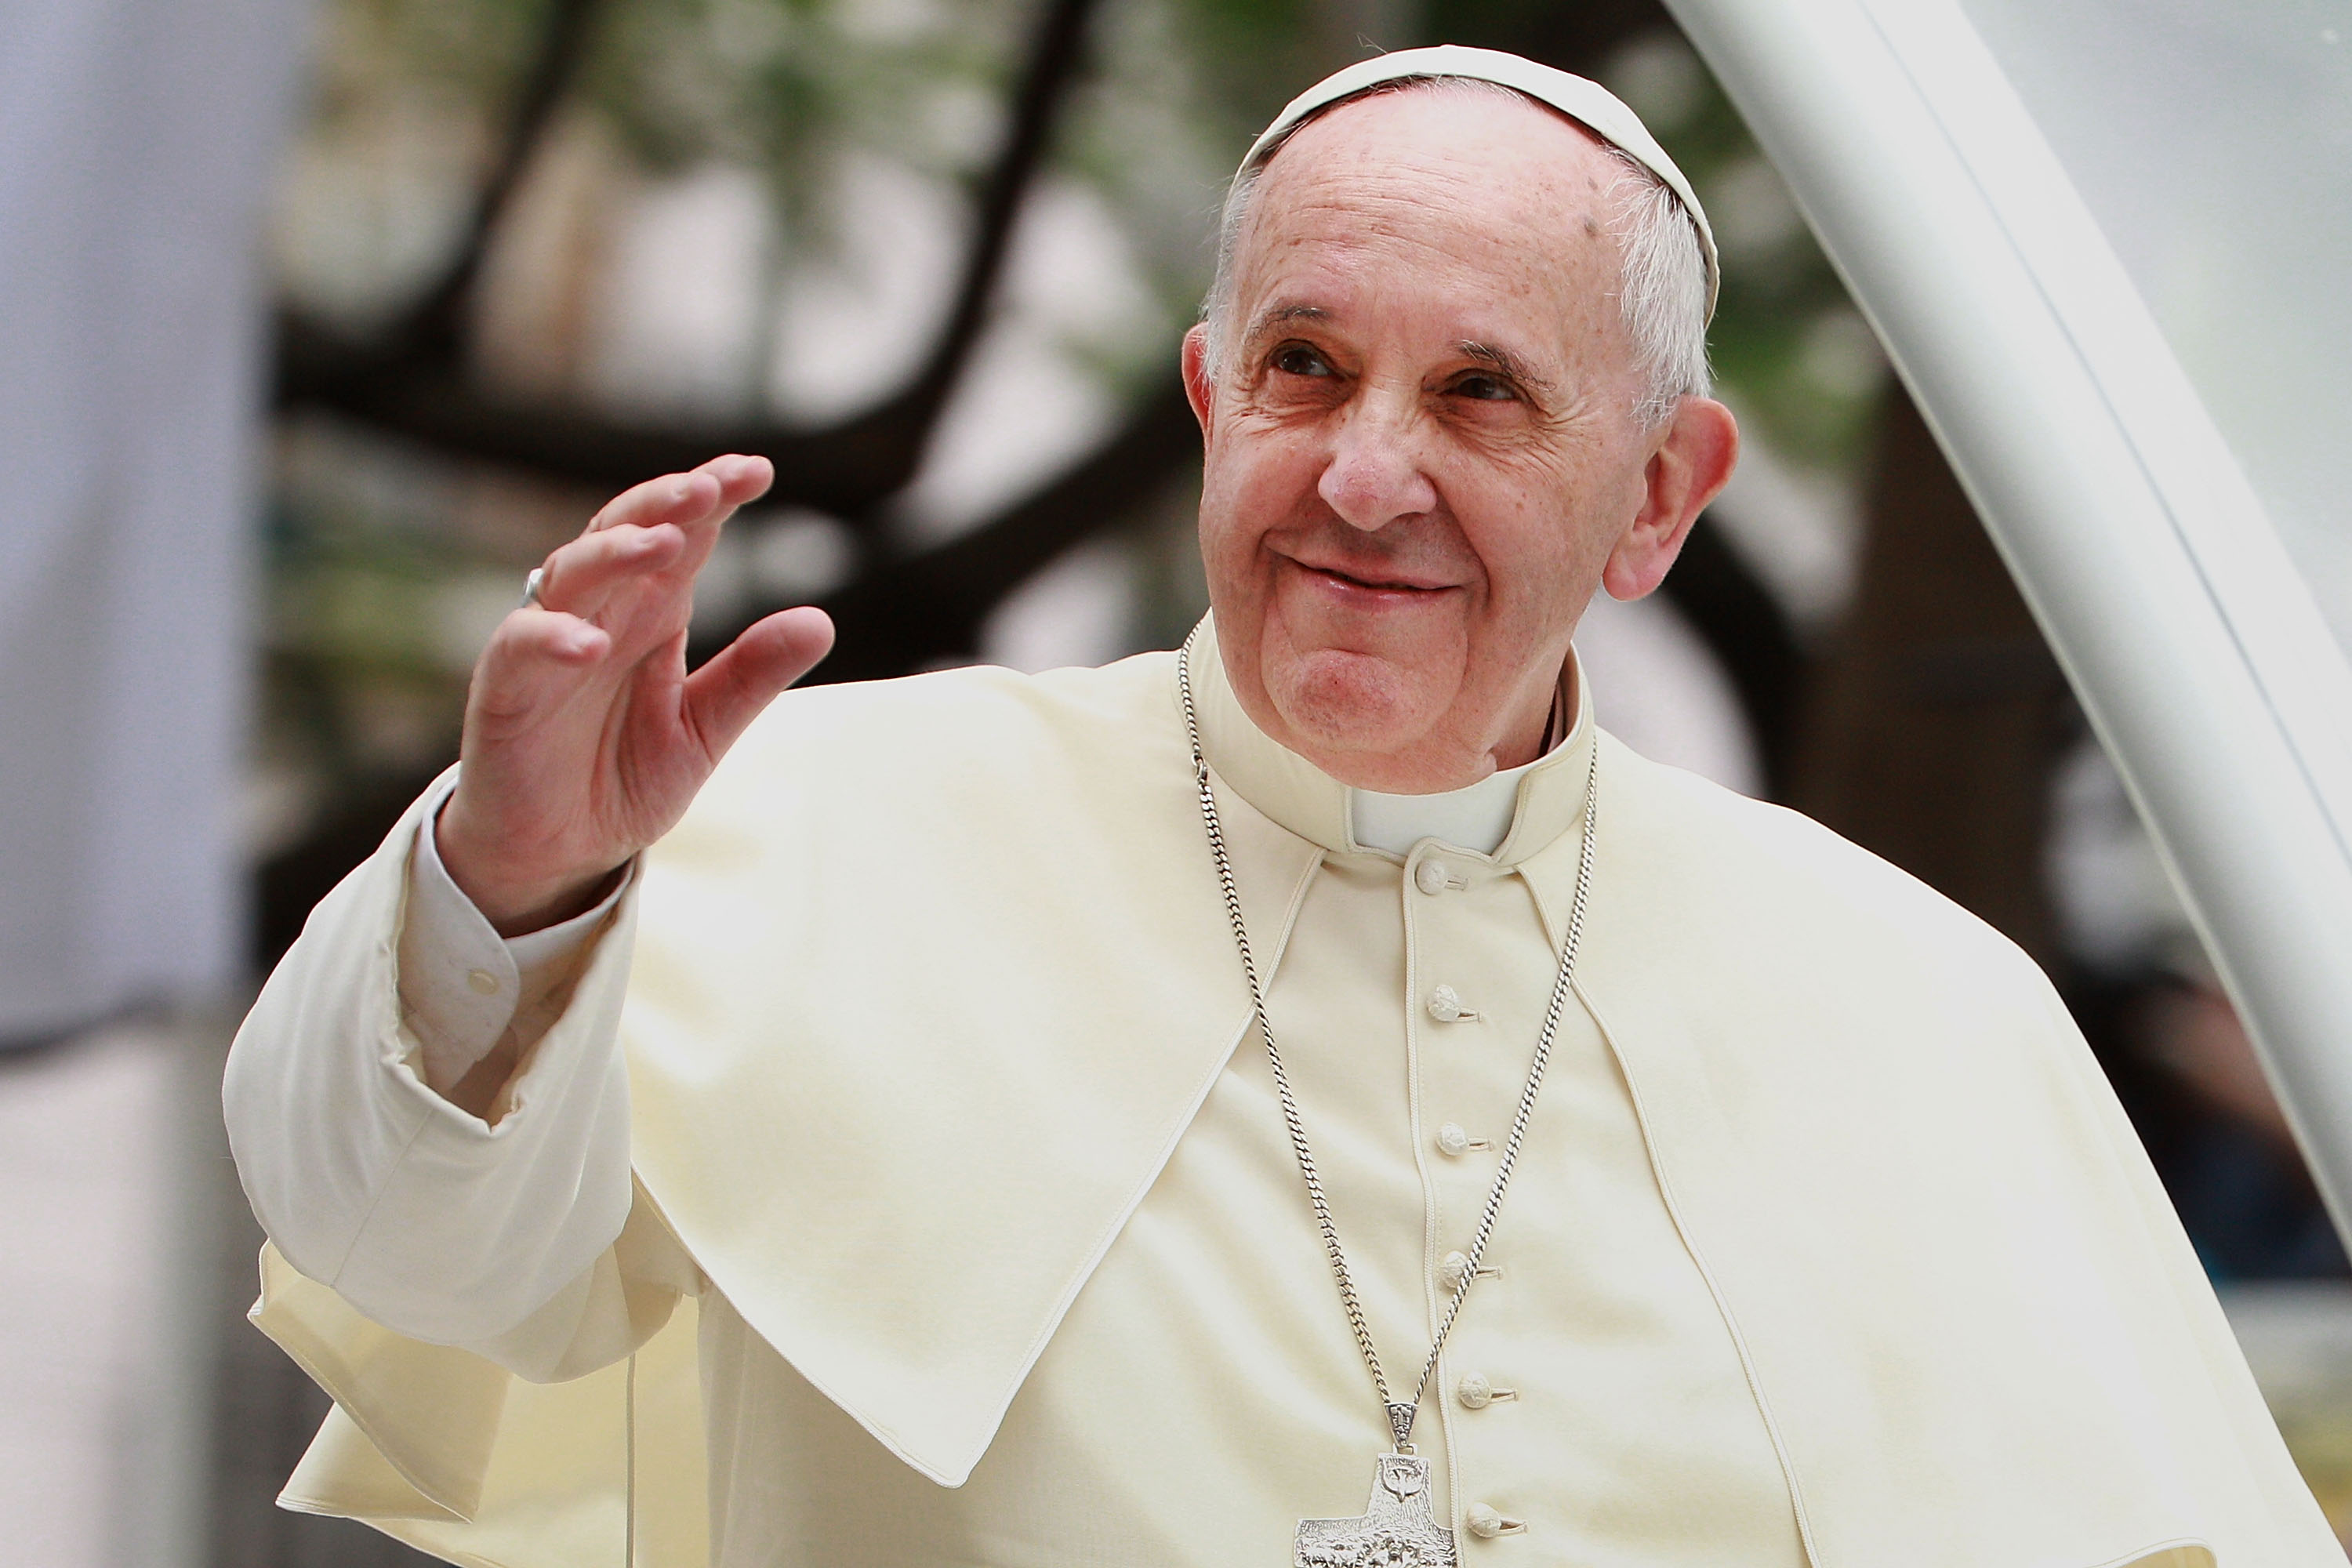 Pope Francis waves to thousands of followers as he arrives at the Manila Cathedral on Jan. 16, 2015, in Manila